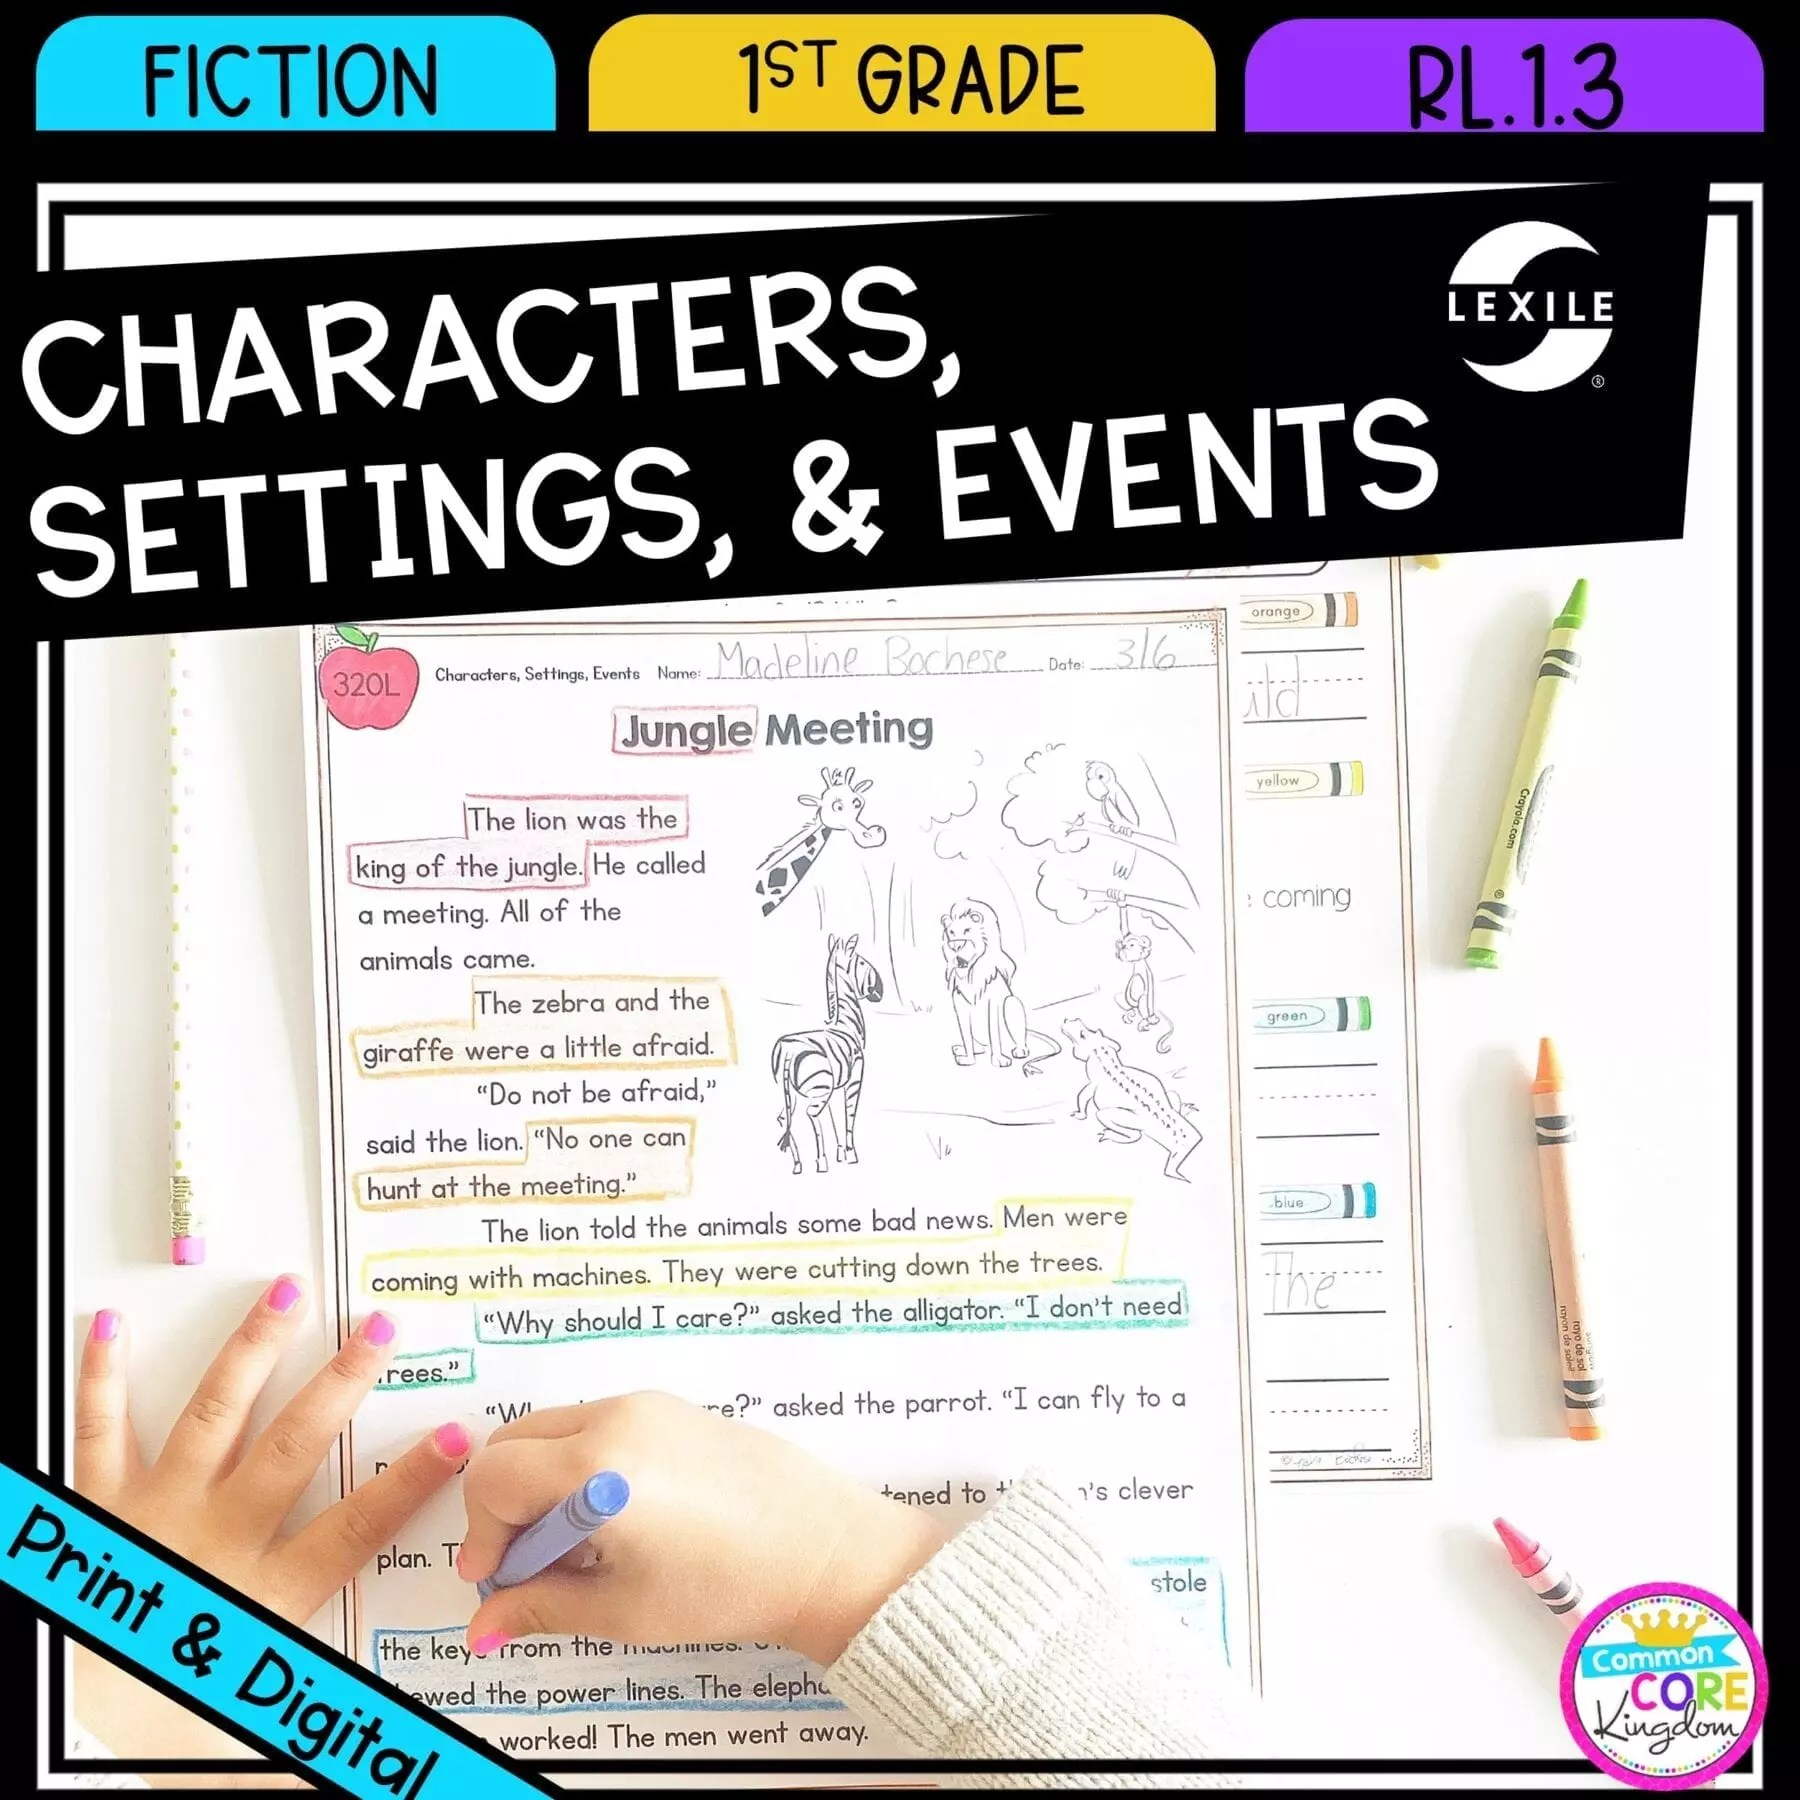 medium resolution of Characters Settings and Events - 1st Grade RL.1.3 Printable \u0026 Digital  Google Slides Distance Learning Pack   Common Core Kingdom